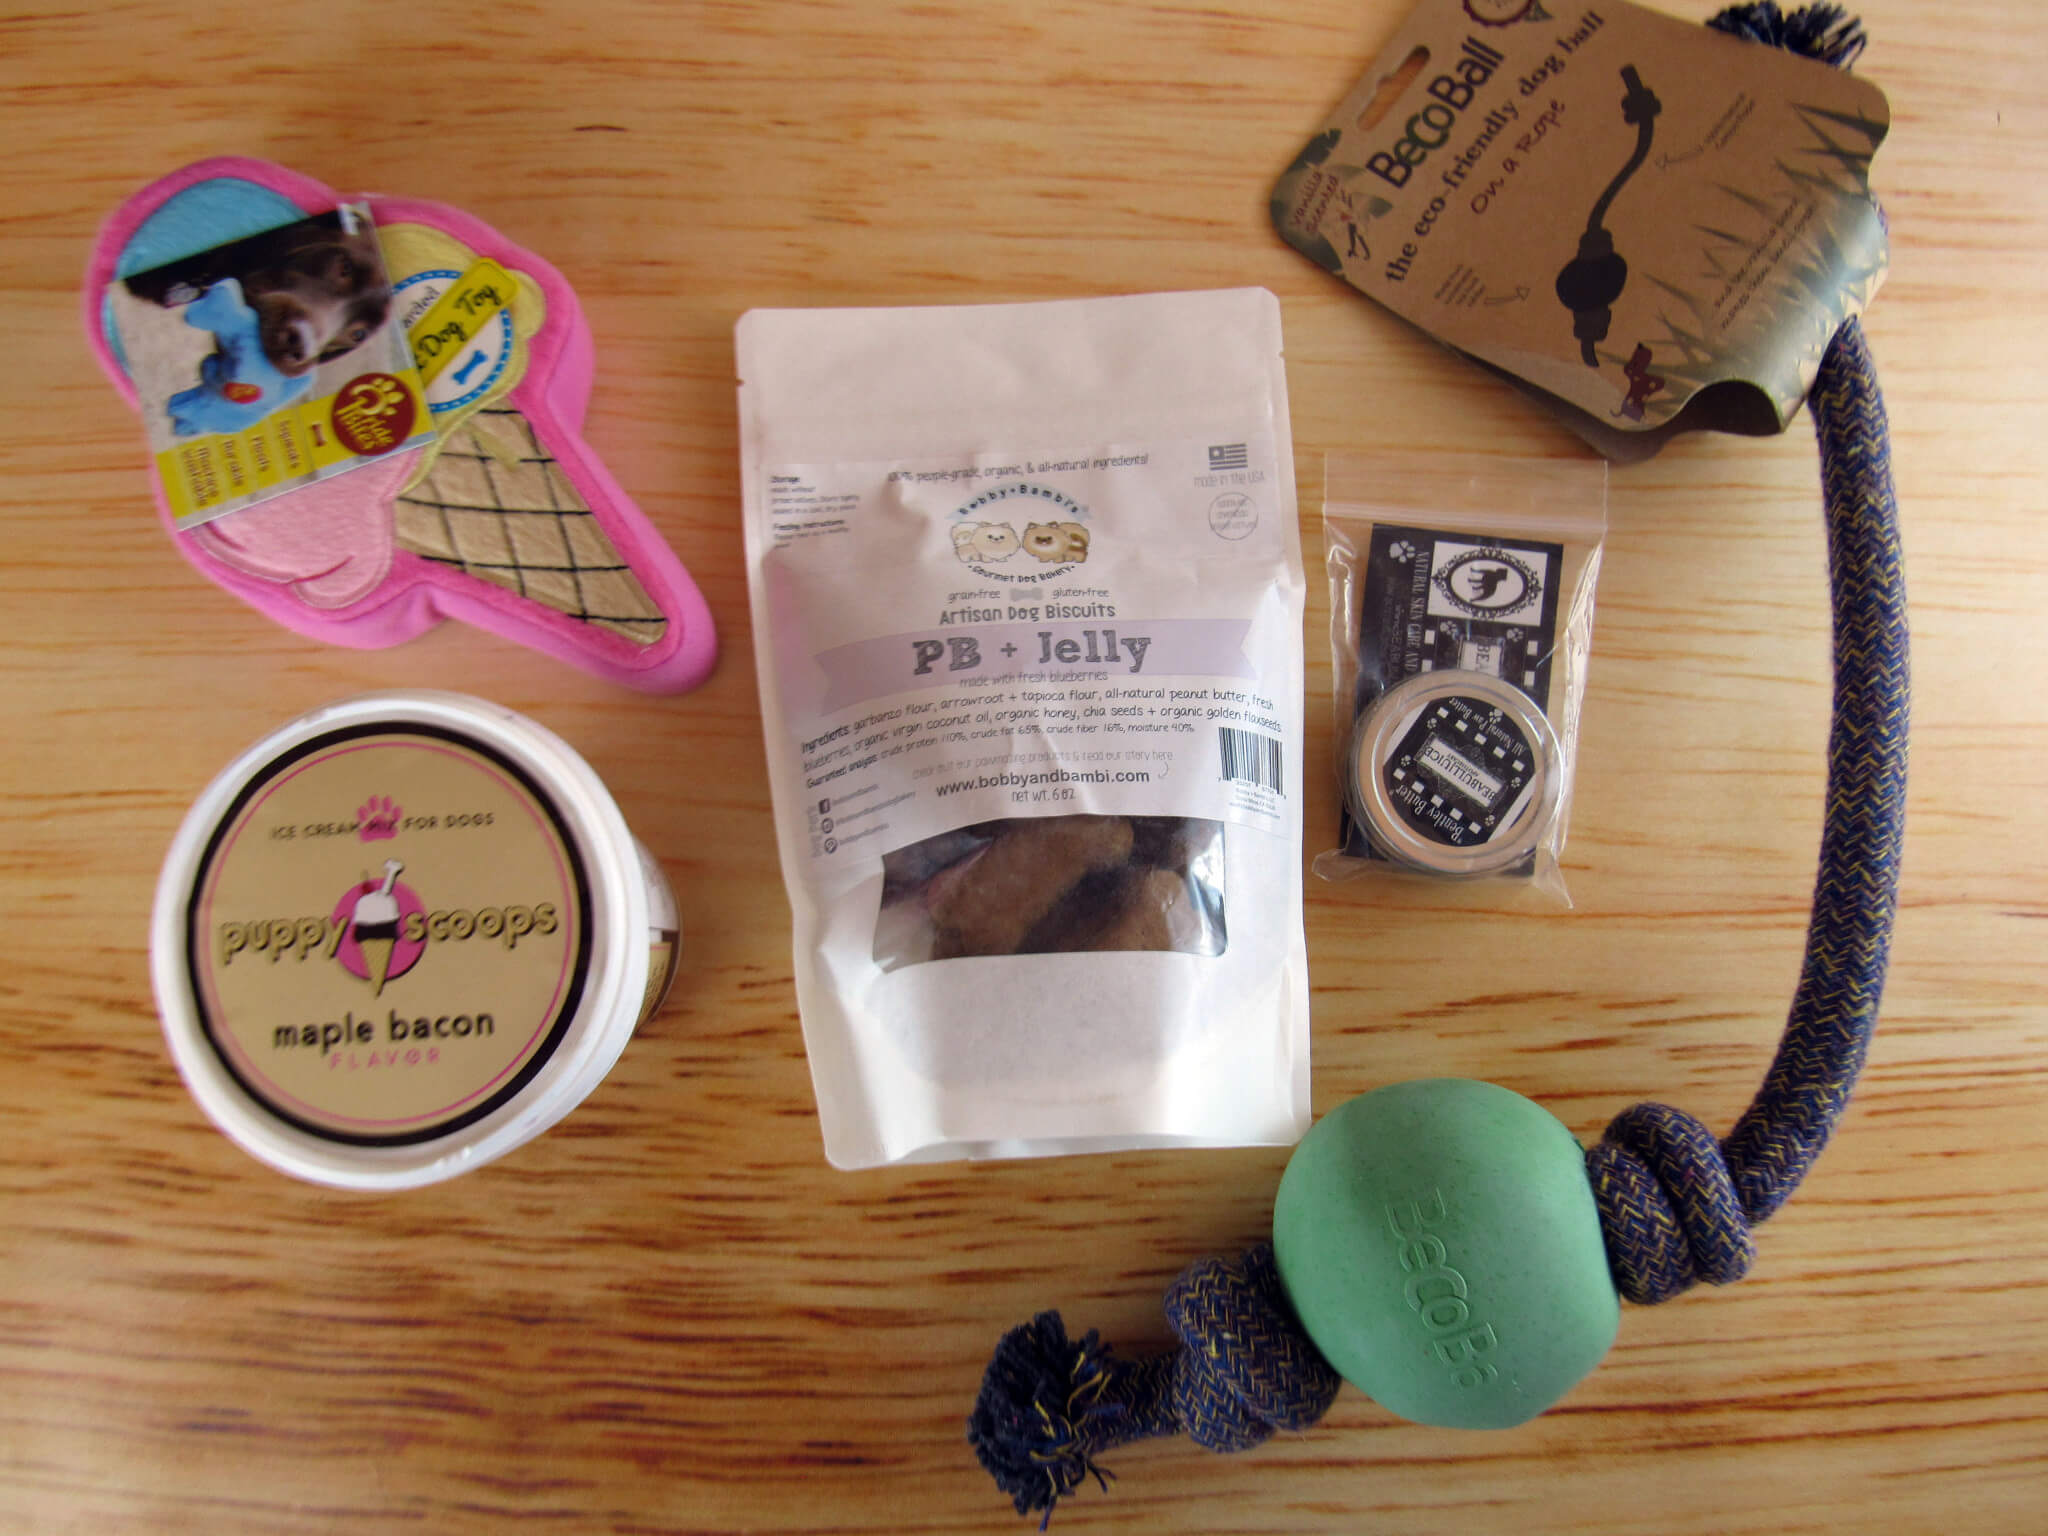 The Dapper Dog Box August 2016 Subscription Box Review + Coupon